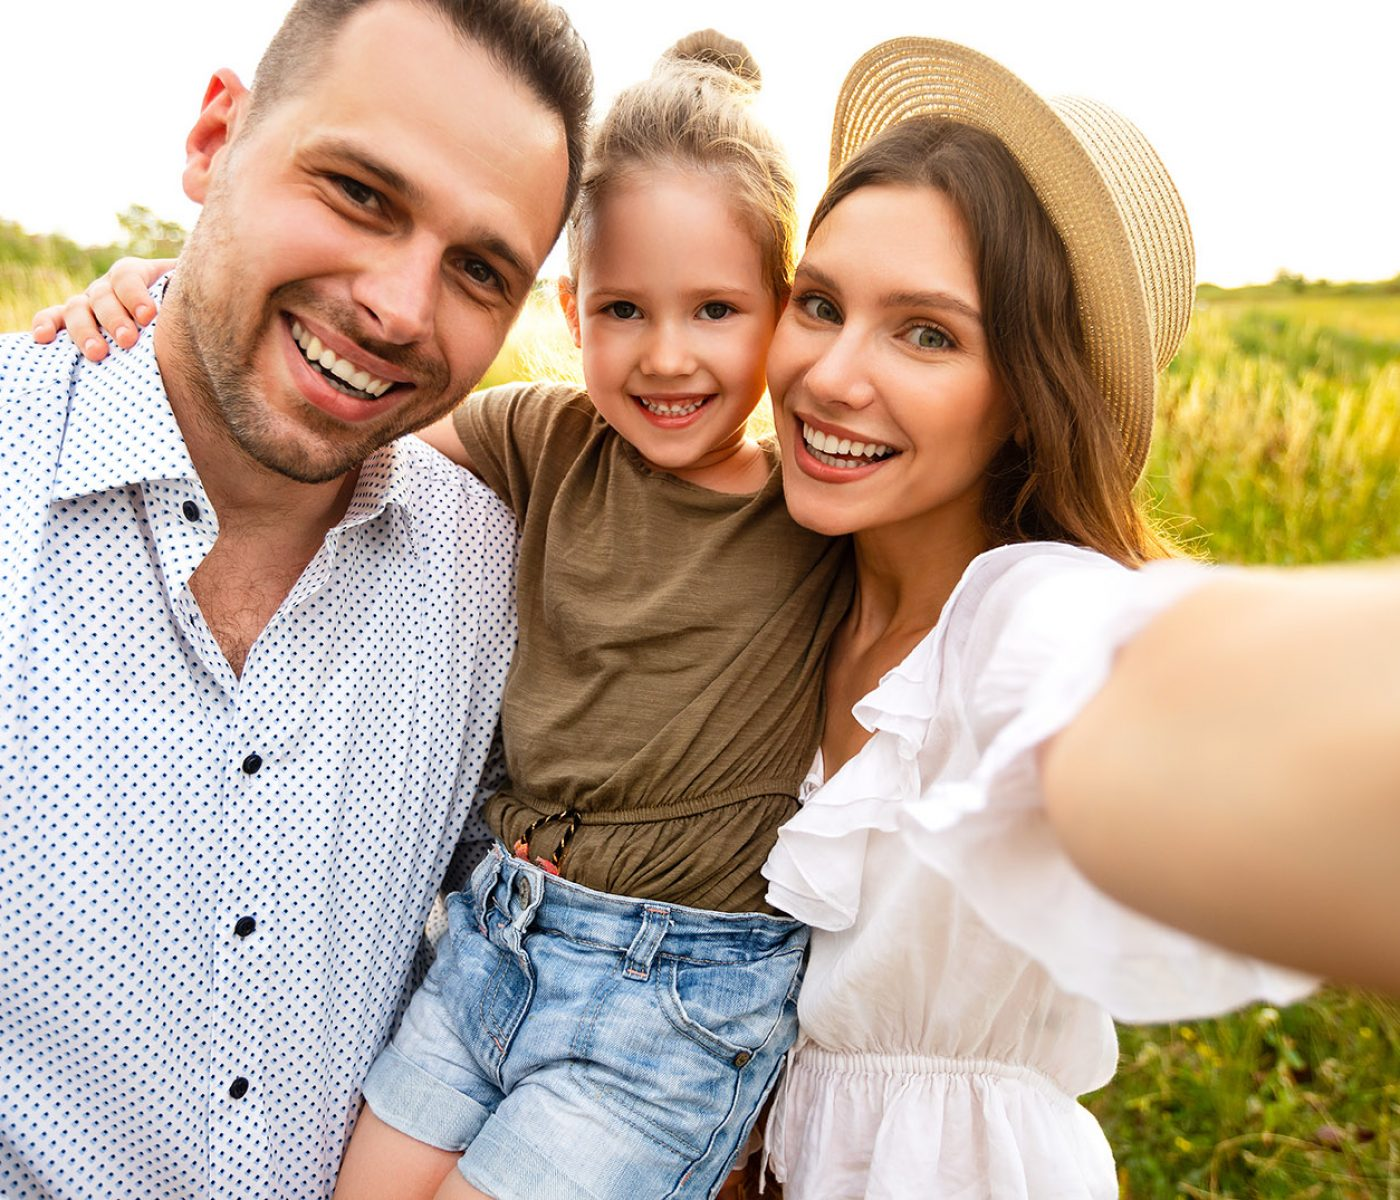 Family Portrait. Closeup of adorable couple with cute kid taking selfie, having fun outdoors